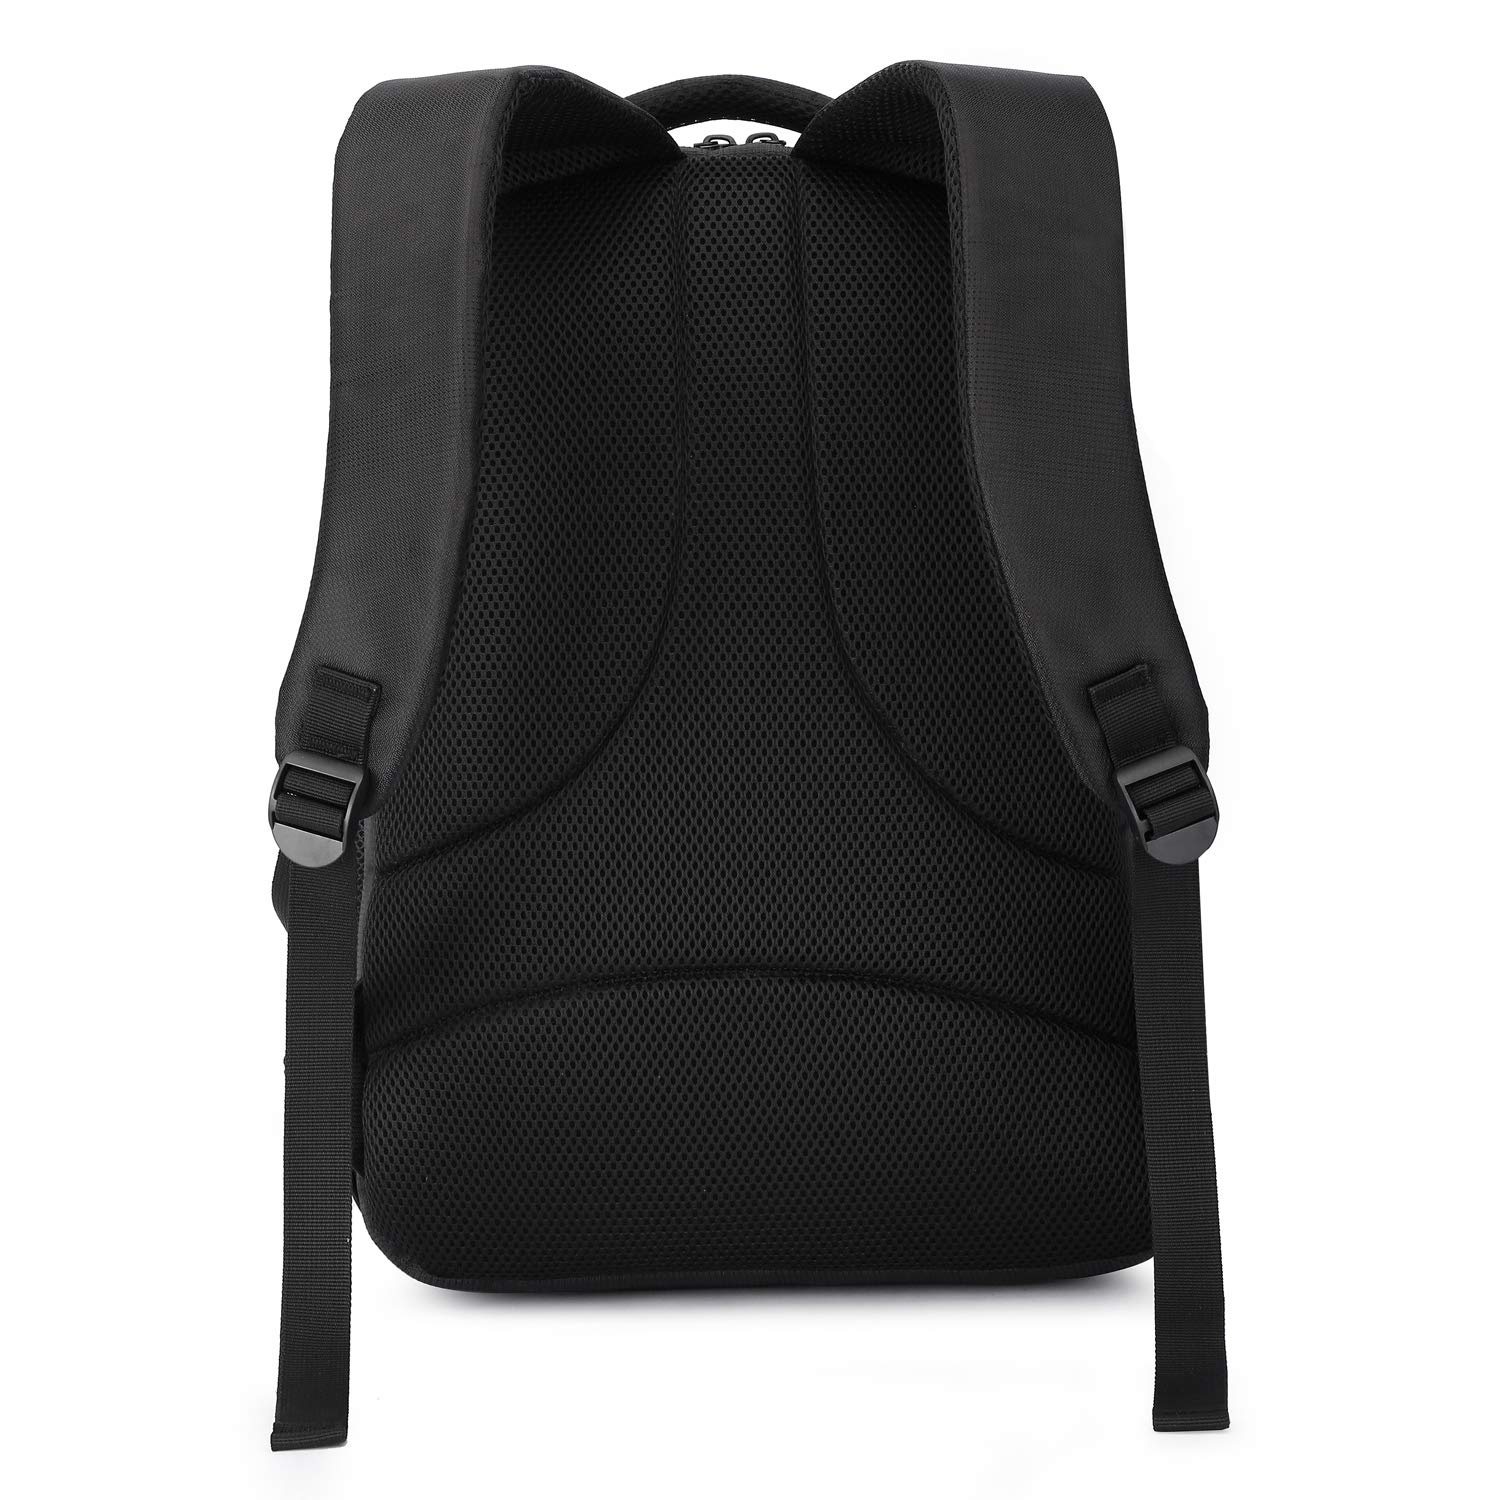 Storage Available for DJI Smart Controller Zoom Drone Anbee Waterproof Backpack Travel Rucksack Carrying Bag Compatible with DJI Mavic 2 Pro